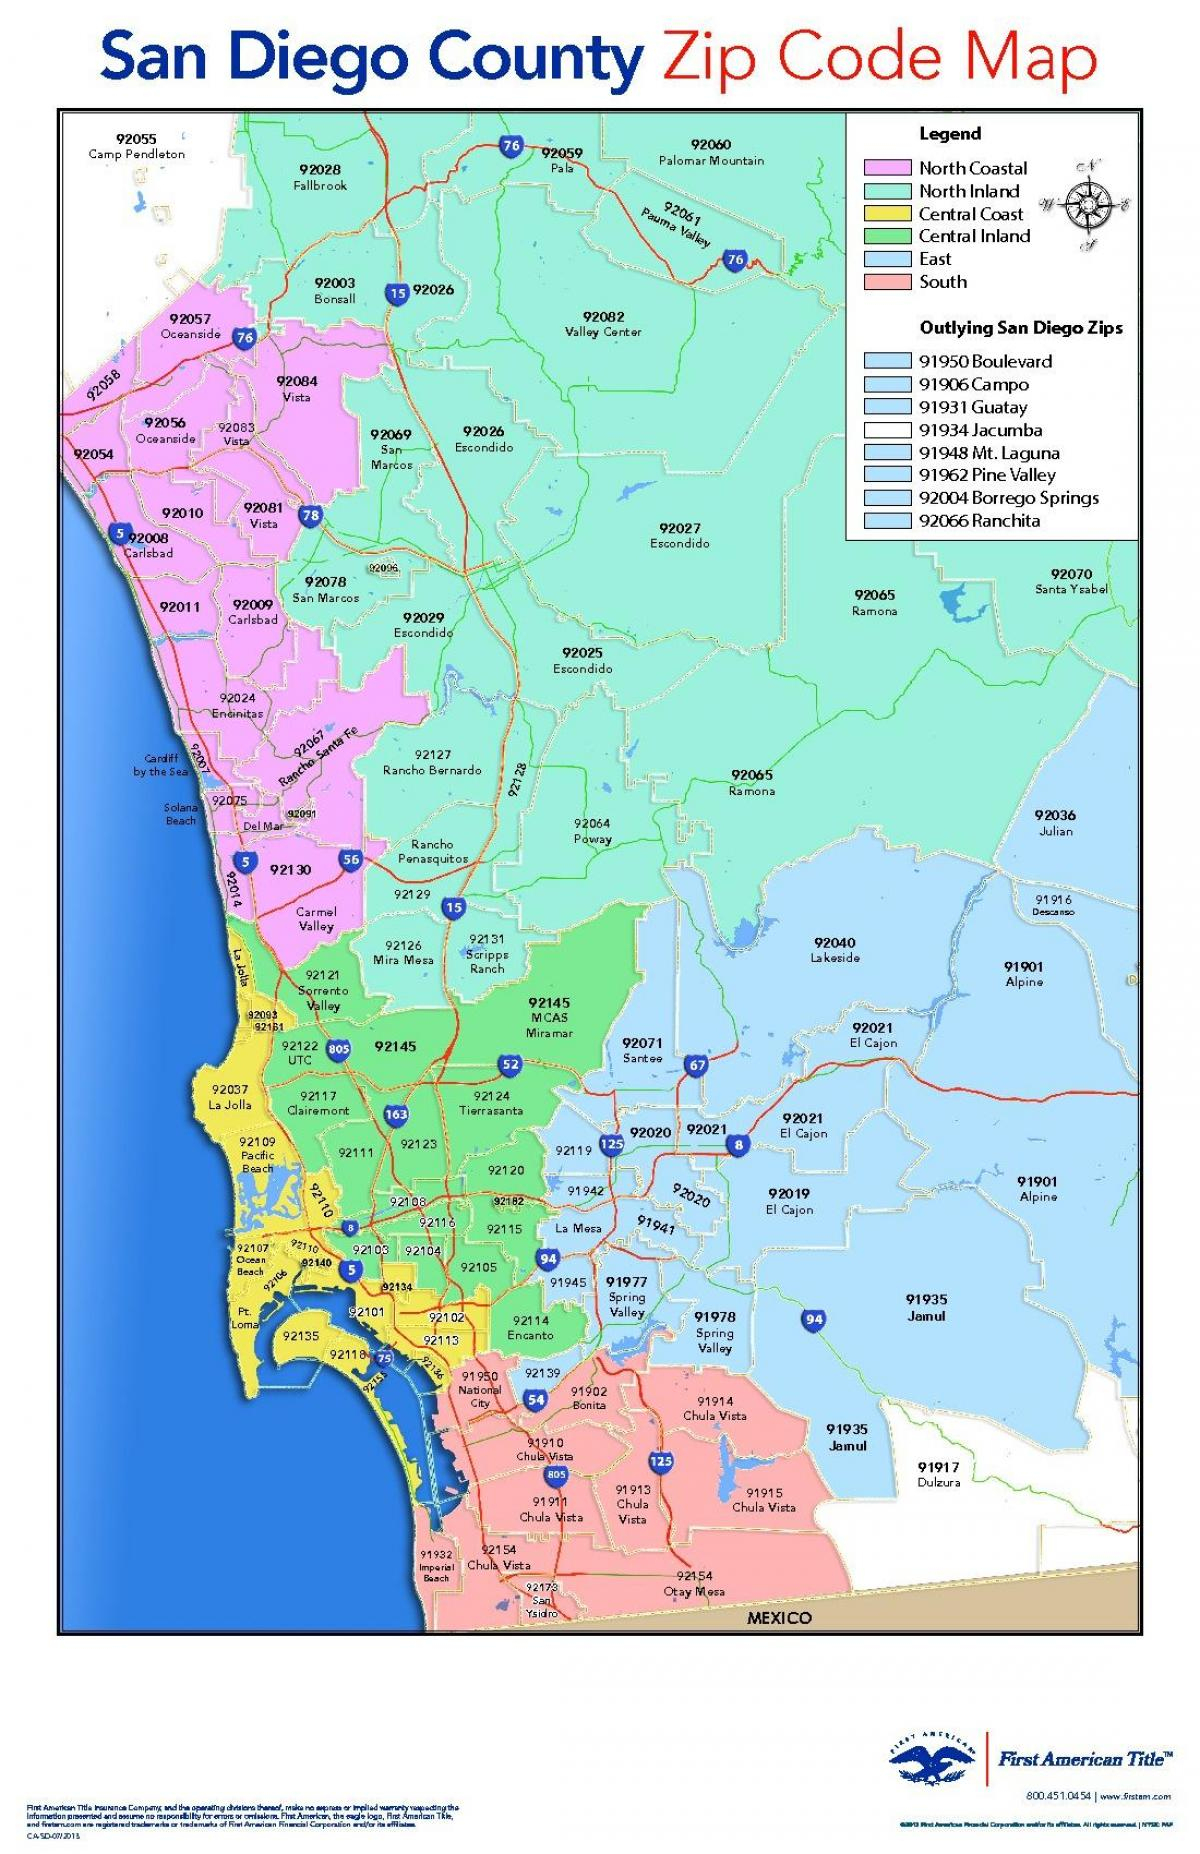 San Diego County Zip Code Map - San Diego County Map With Zip Codes - Free Printable Zip Code Maps